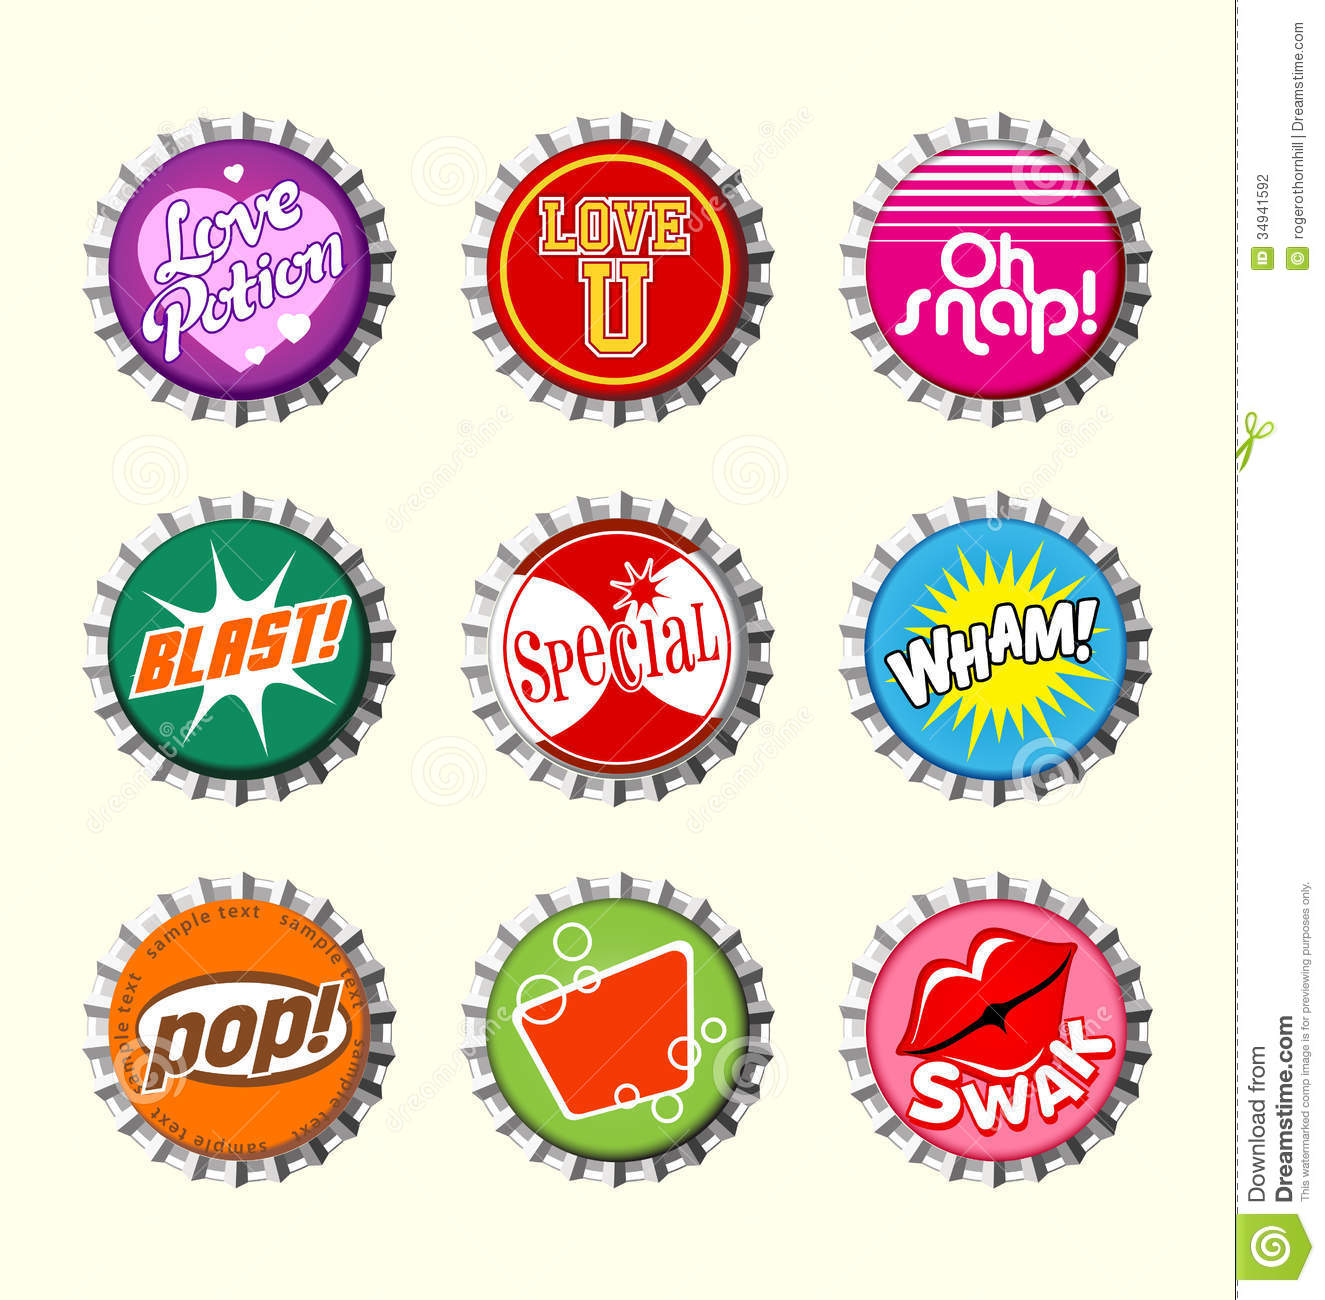 Retro bottle cap designs set 2 stock vector illustration for Cool bottle cap designs